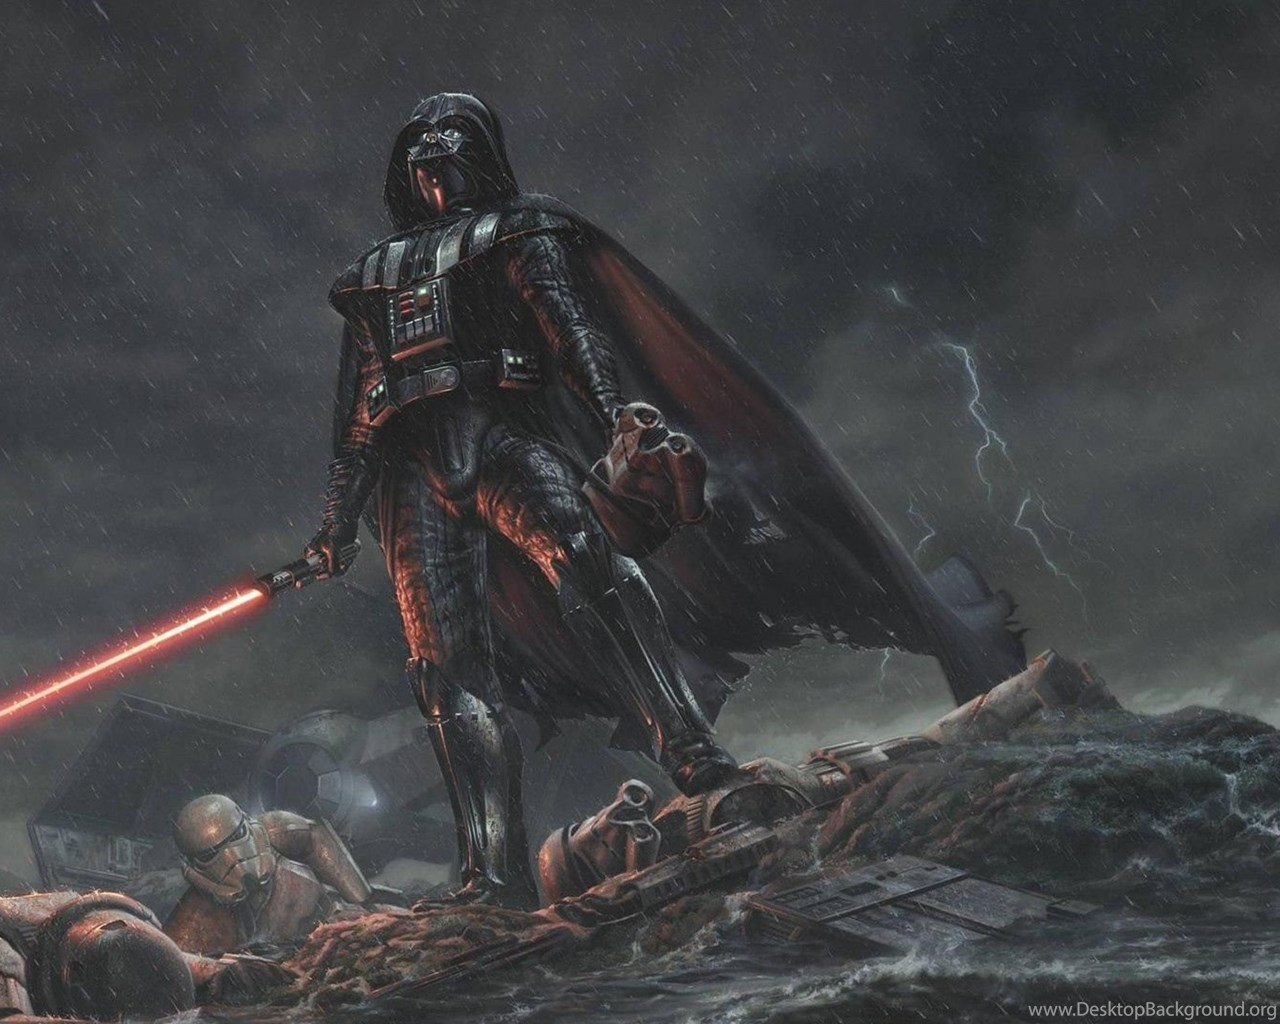 Download Wallpapers 1920x1080 Star Wars Darth Vader Art Rain Desktop Background